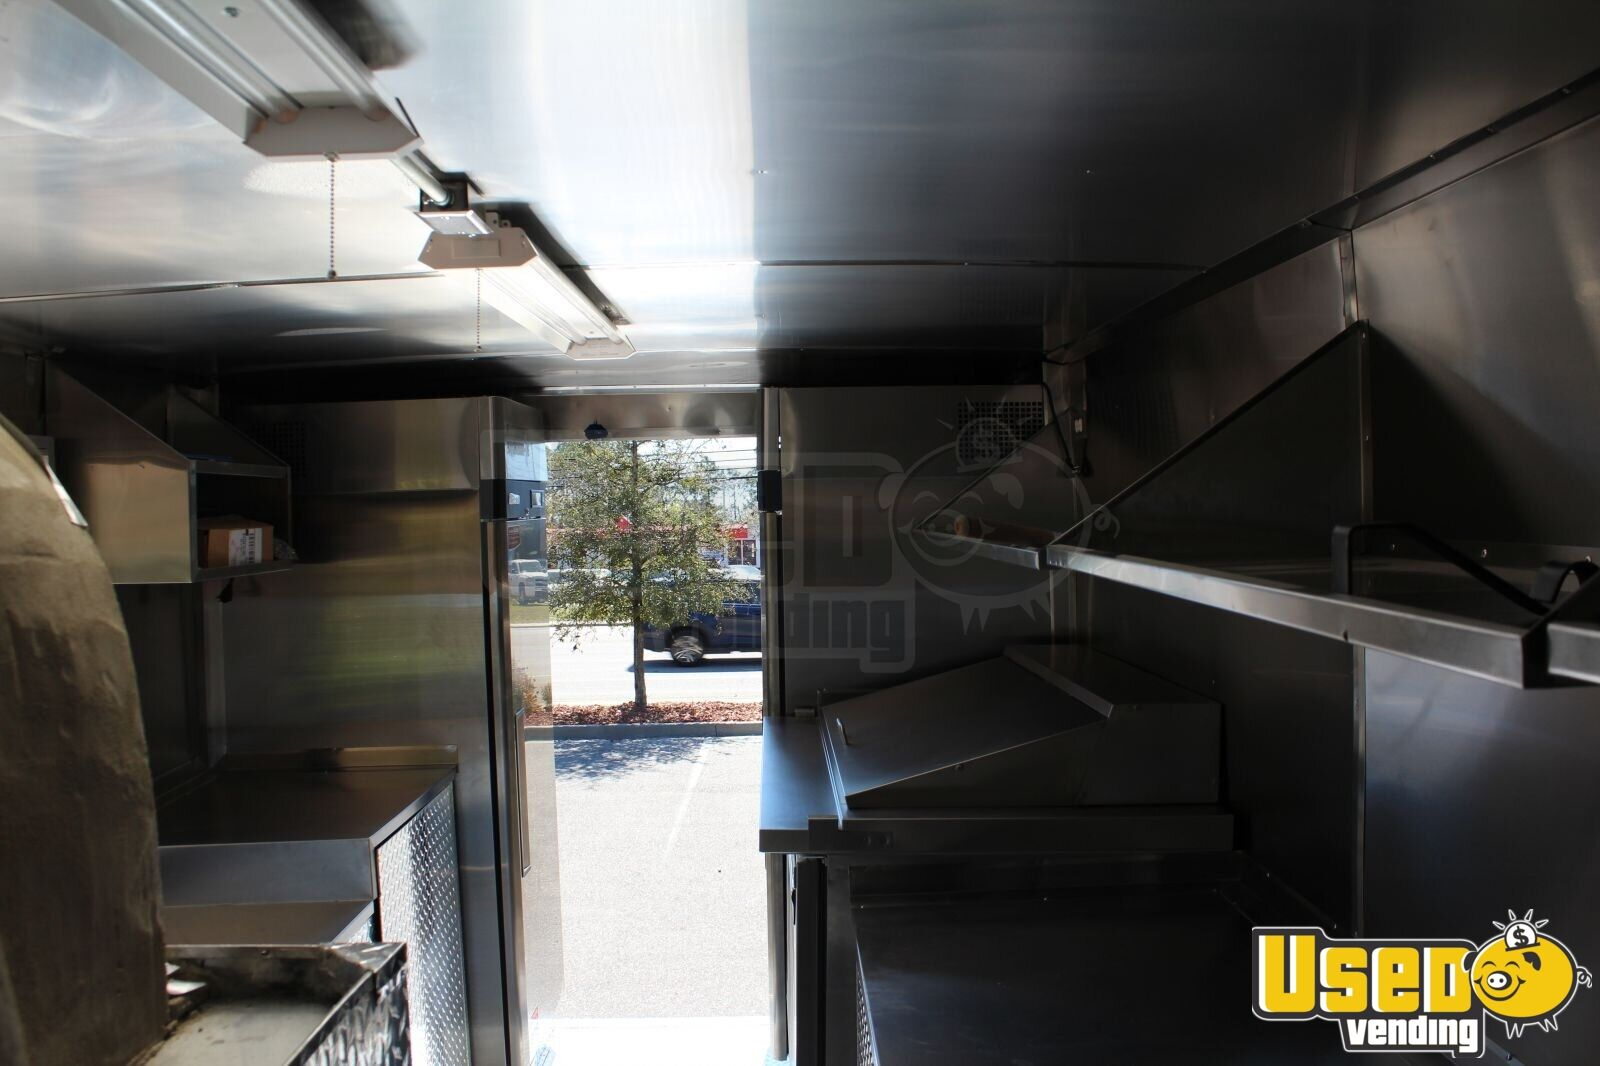 1996 Gmc Pizza Food Truck Cabinets South Carolina Diesel Engine for Sale - 3